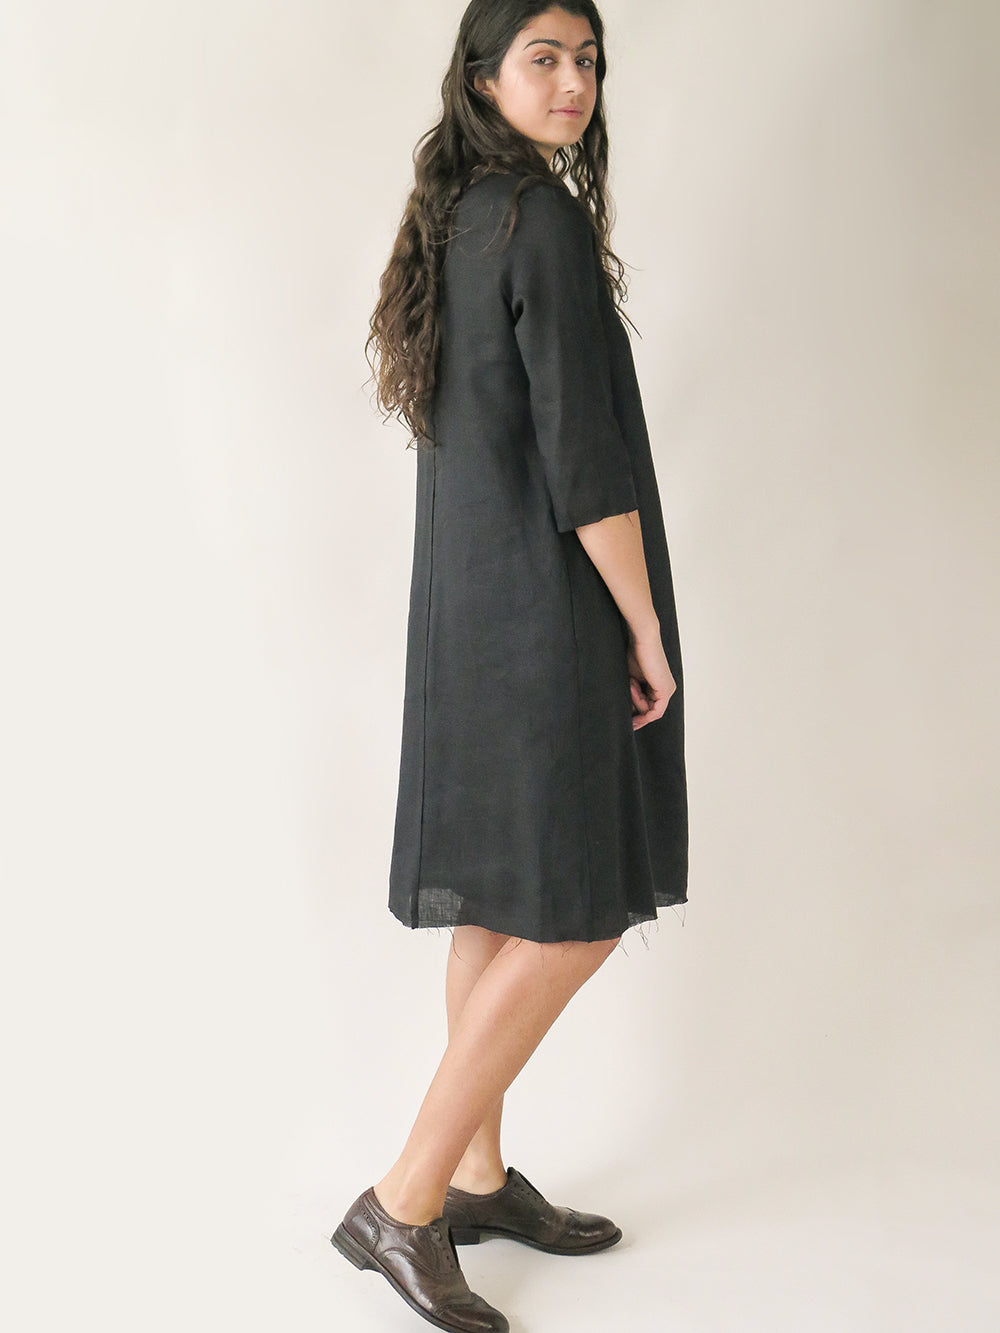 rye dress in black